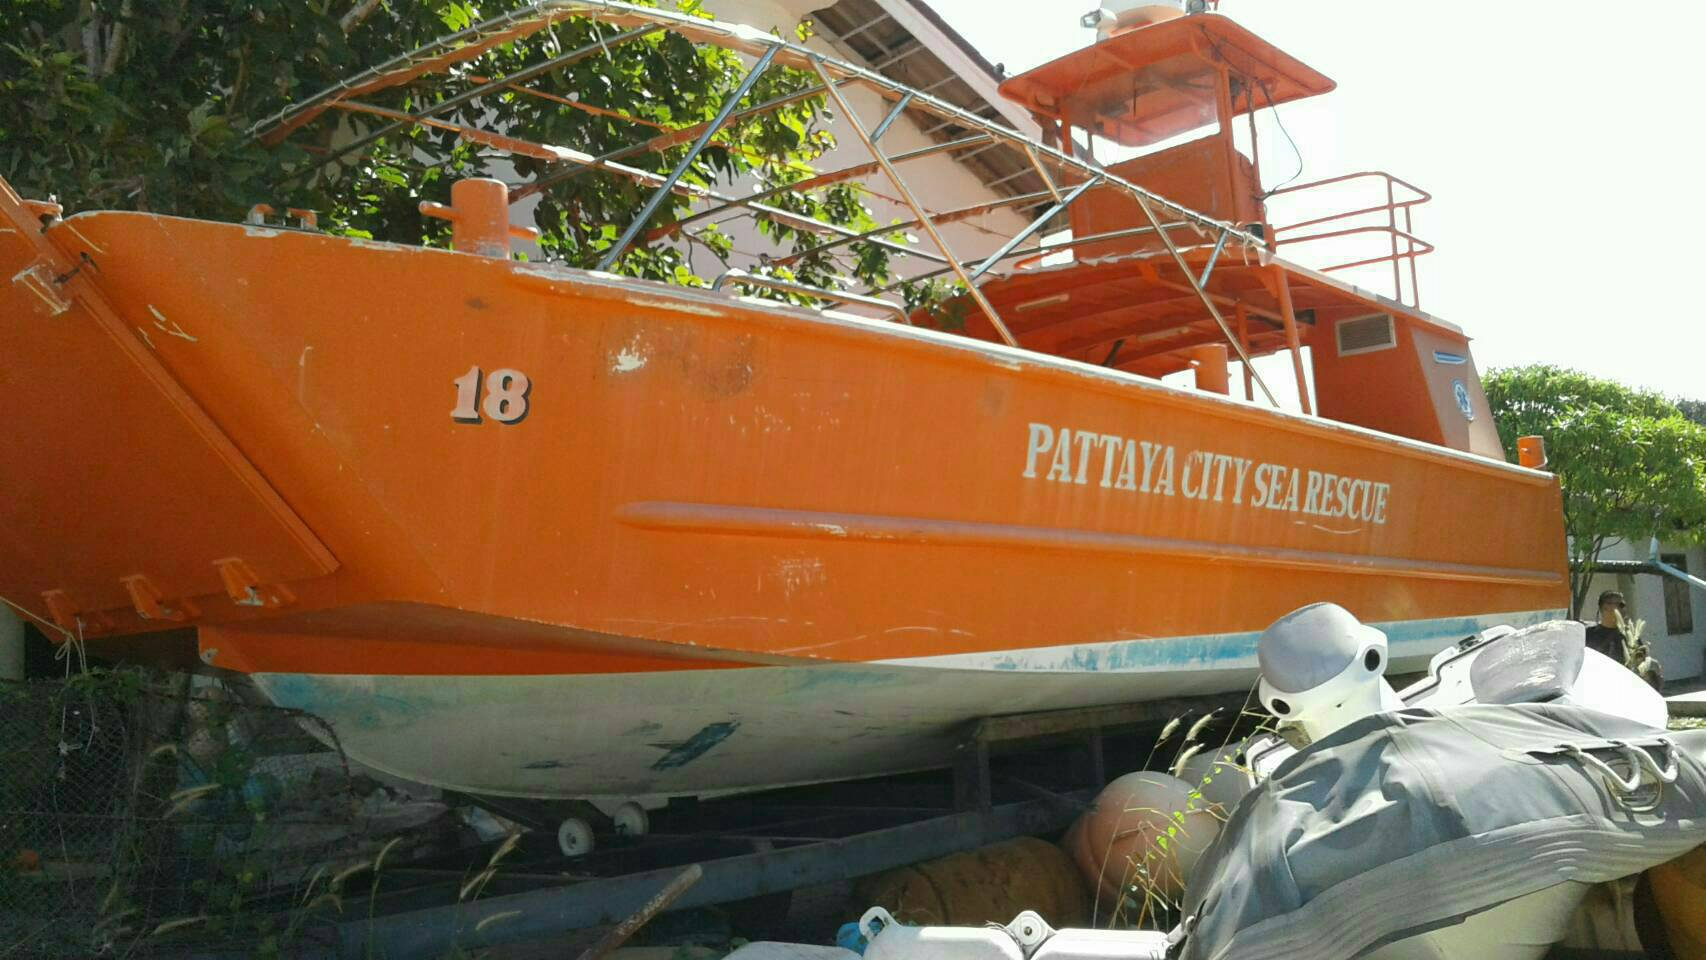 Pattaya has donated what it claims to be a 10-million-baht patrol boat to the Royal Thai Navy to use for marine rescues.